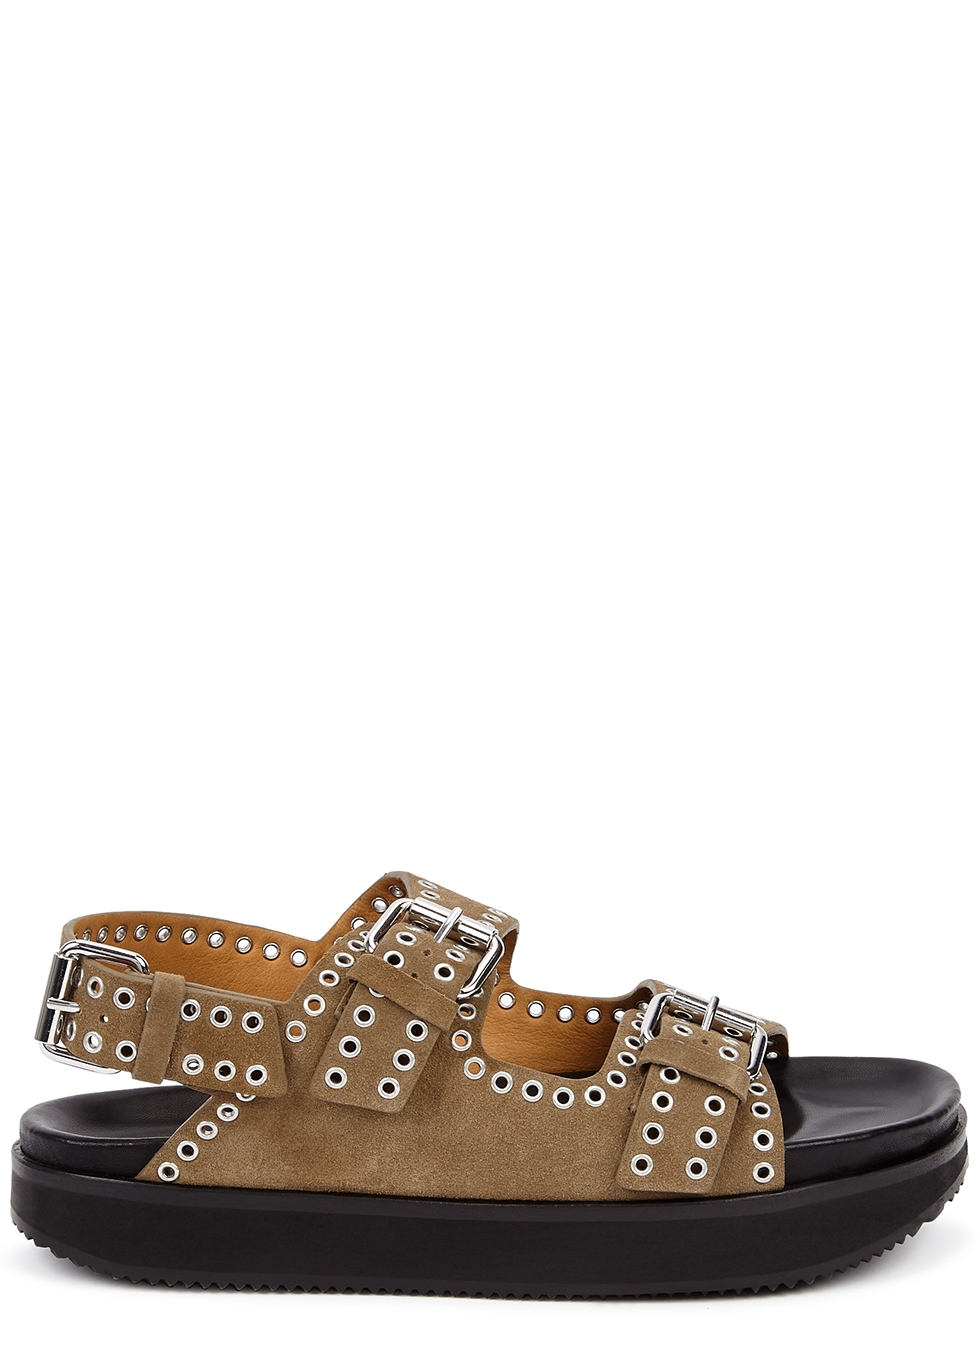 Ophie studded suede sandals